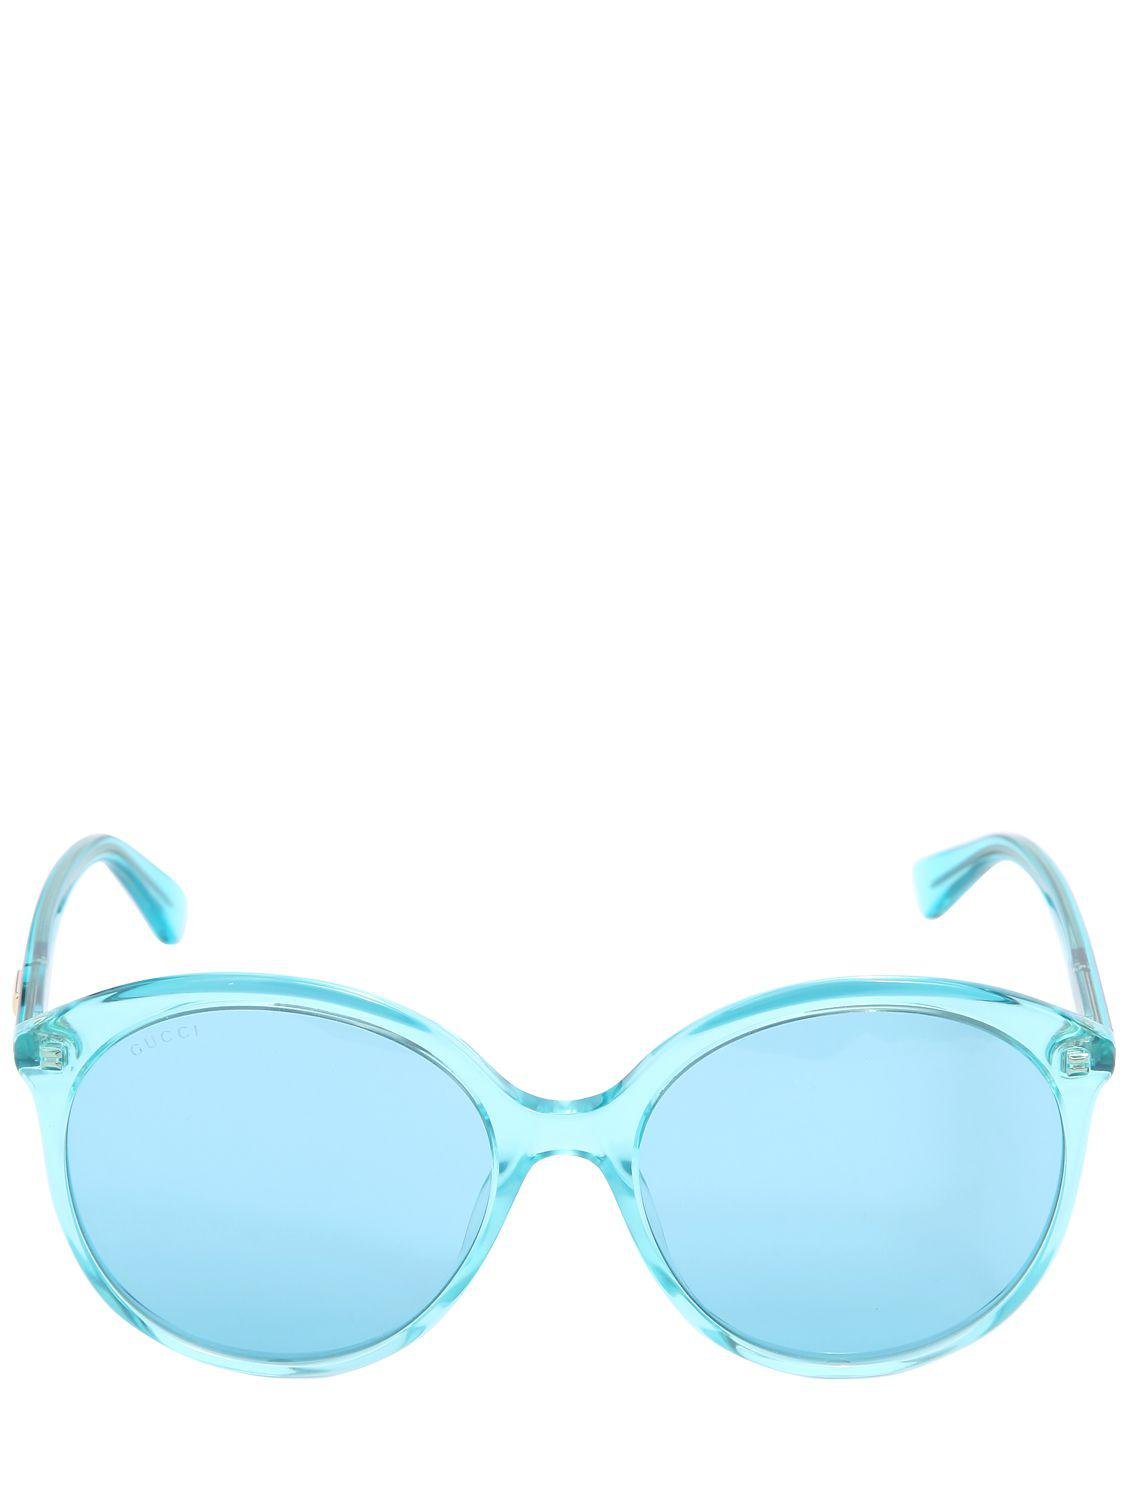 648b6ee12f200 Lyst - Gucci Oversize Round Sunglasses in Blue